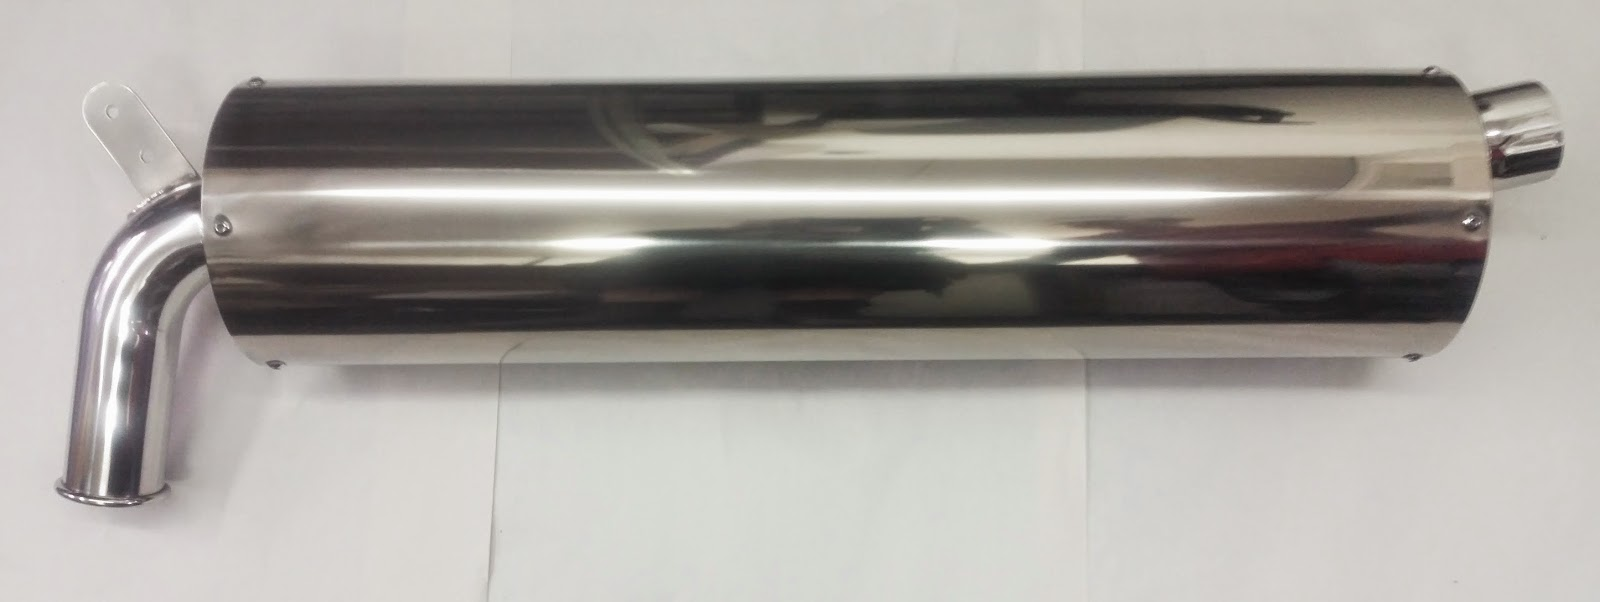 Freshly Polished Titanium Raceco Silencer and looking awesome!